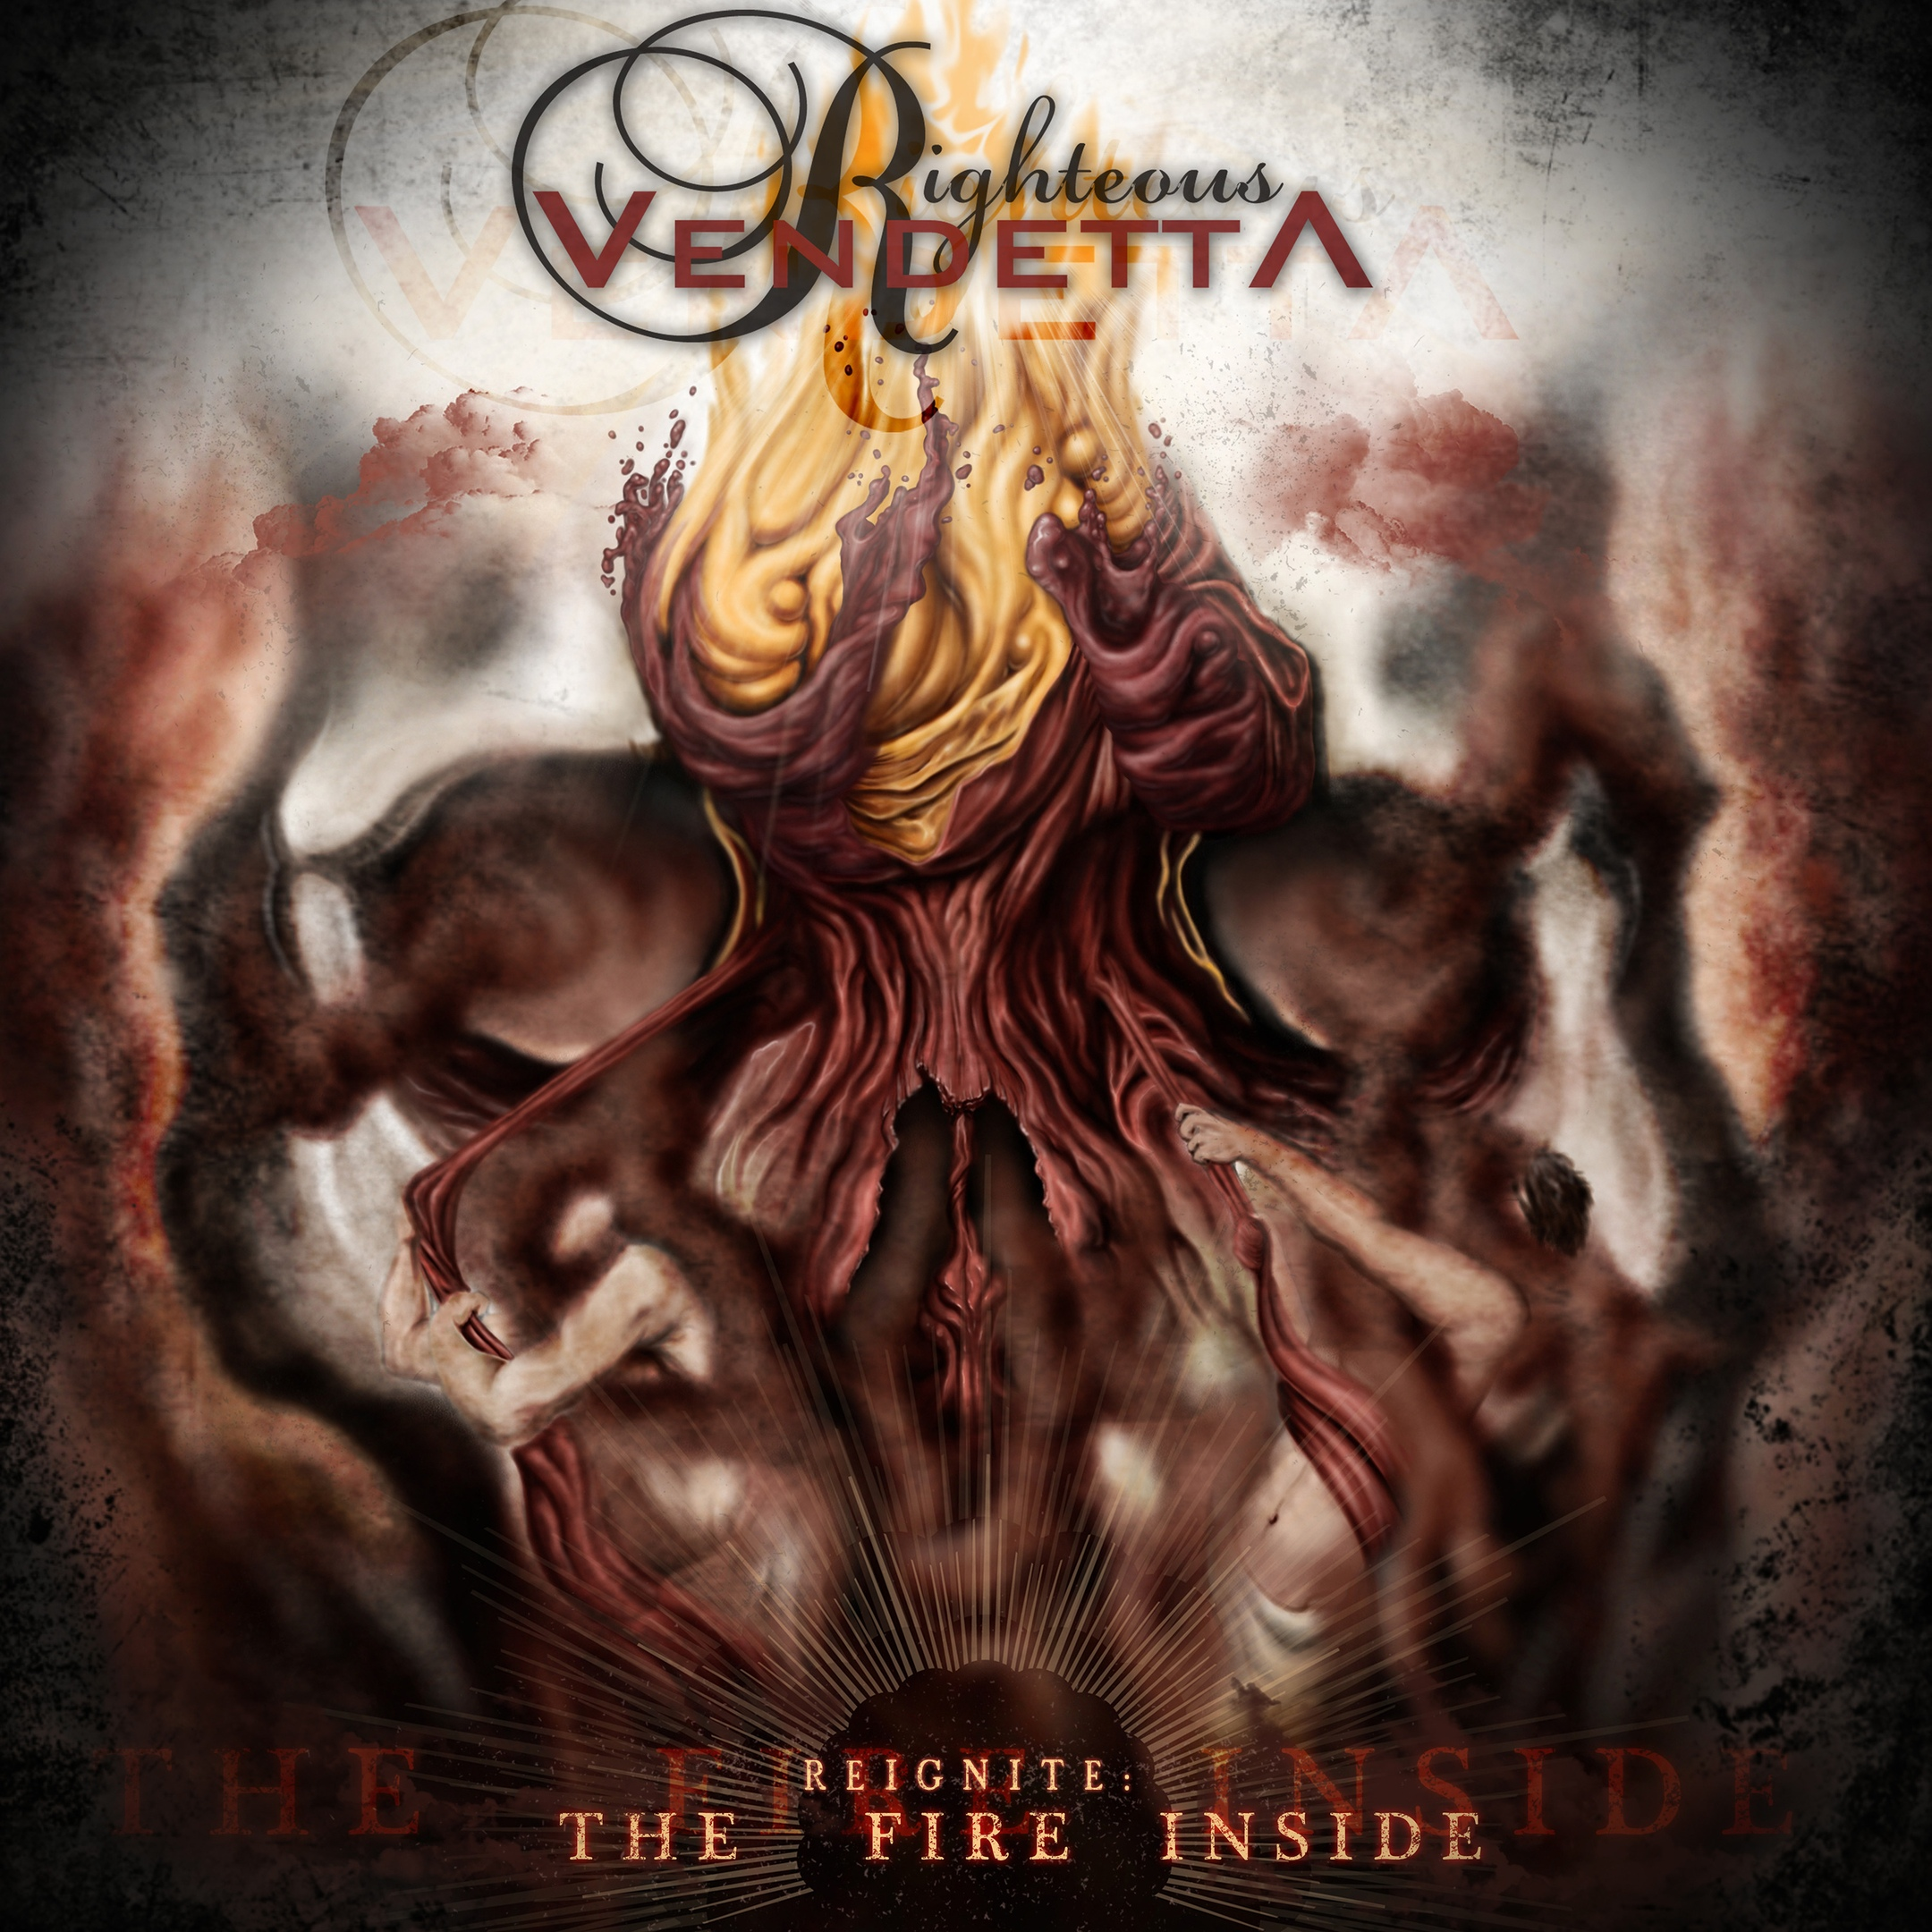 Righteous Vendetta - Reignite: The Fire Inside (2018)